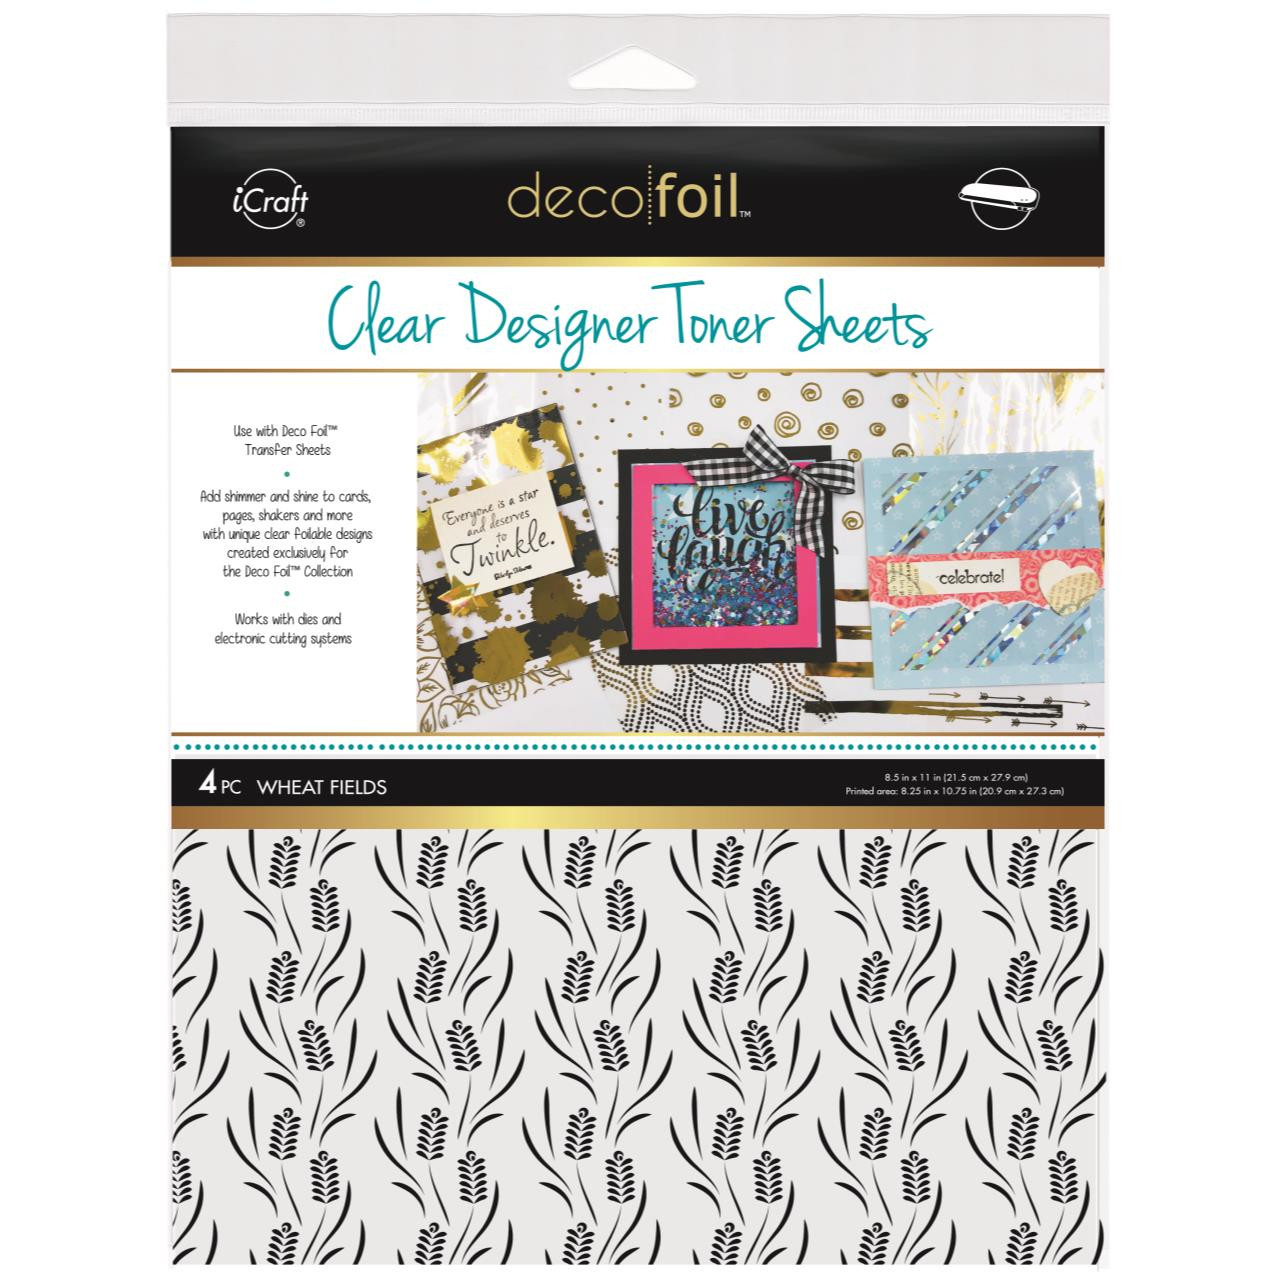 Icraft Deco Foil Clear Designer Toner Sheets, Wheat Fields - 000943055235